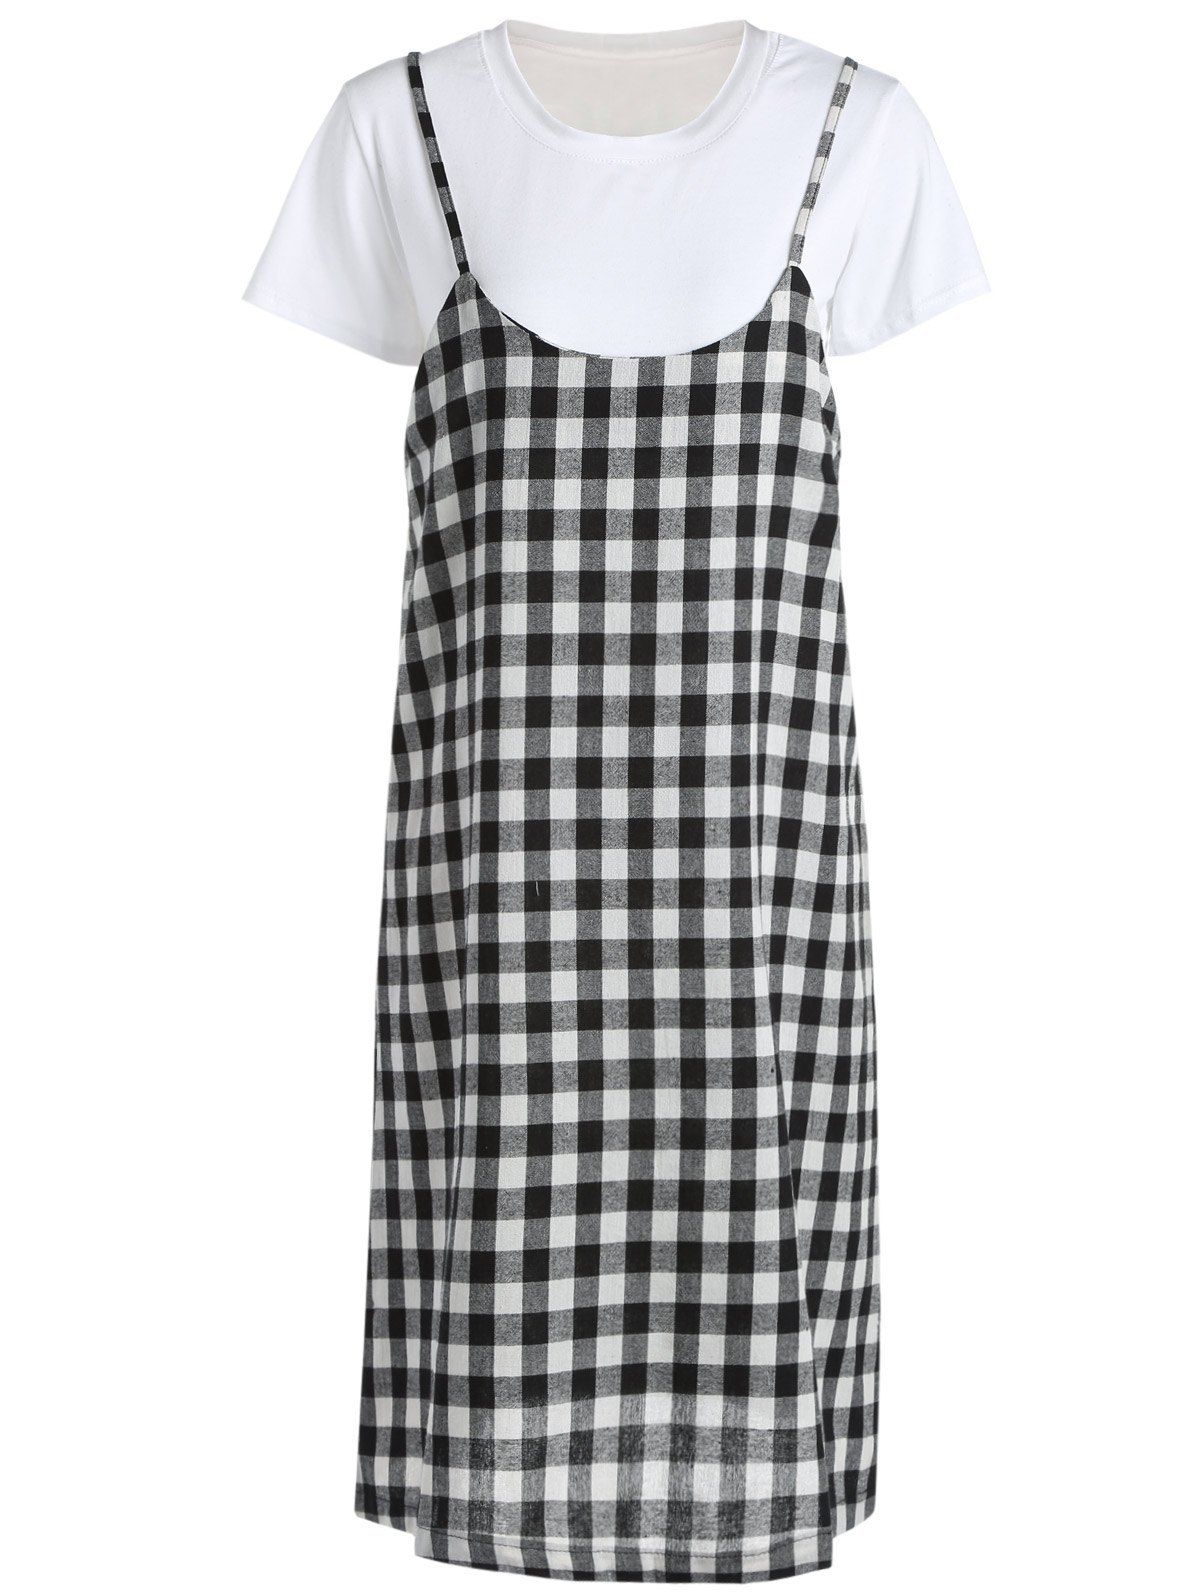 Casual Women's Round Neck Short Sleeve T-Shirt and Checkered Dress Set